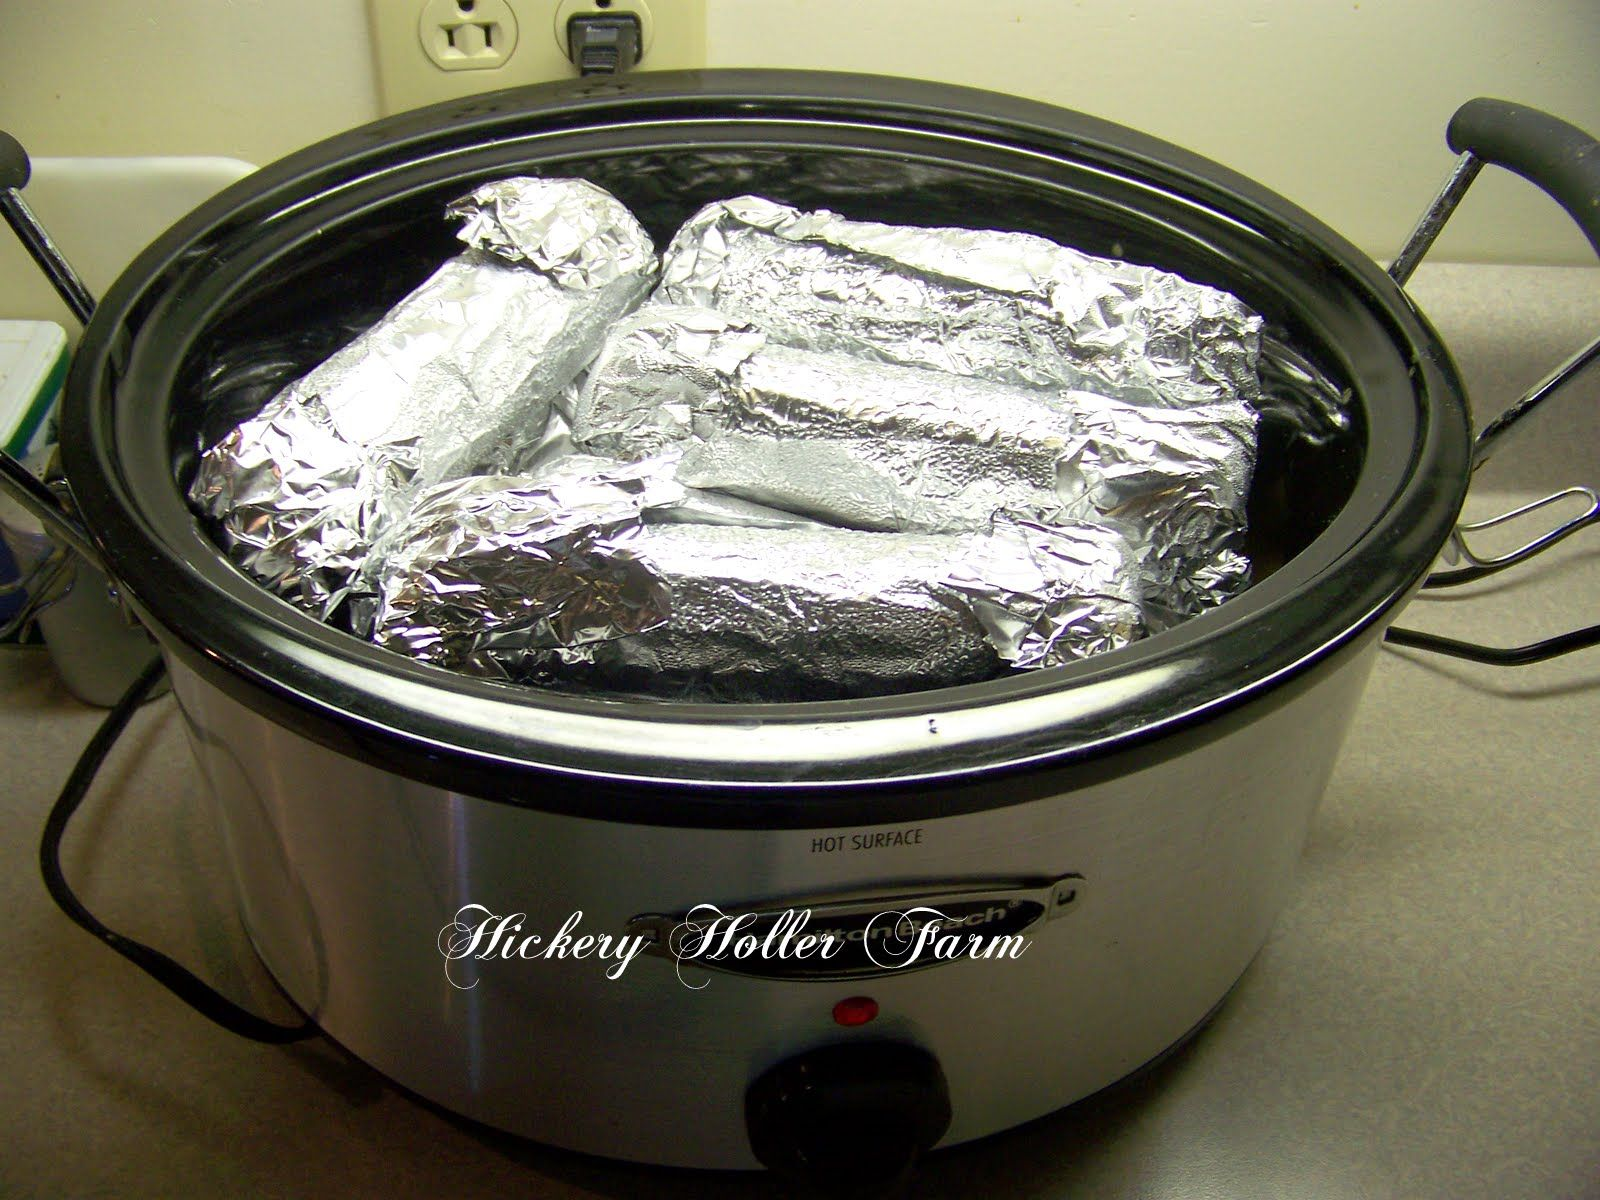 pork chops on the bottom, baked potatoes in the middle, corn on the cob on top....a complete meal in one crockpot!